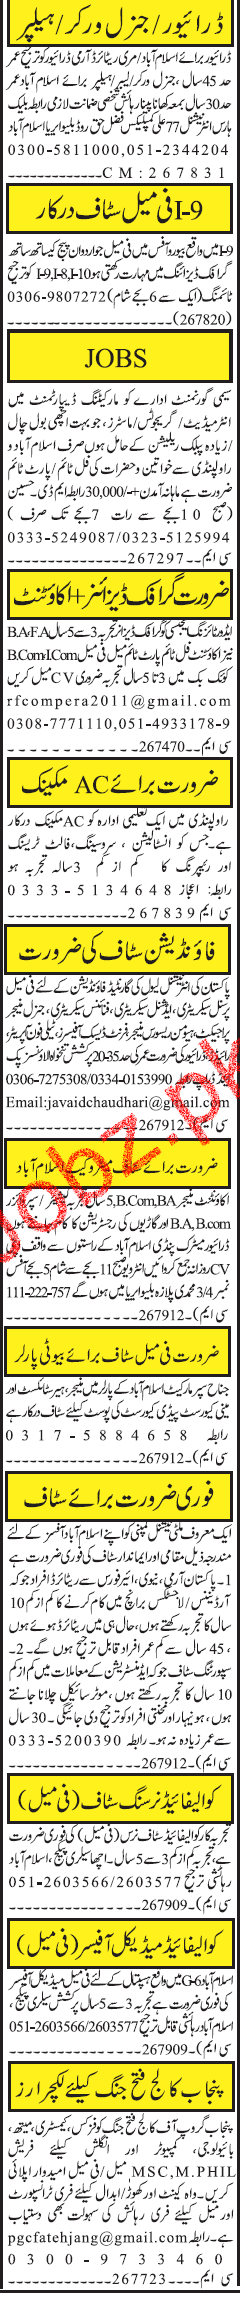 Drivers, General Workers, Labors, Graphic Designers Wanted